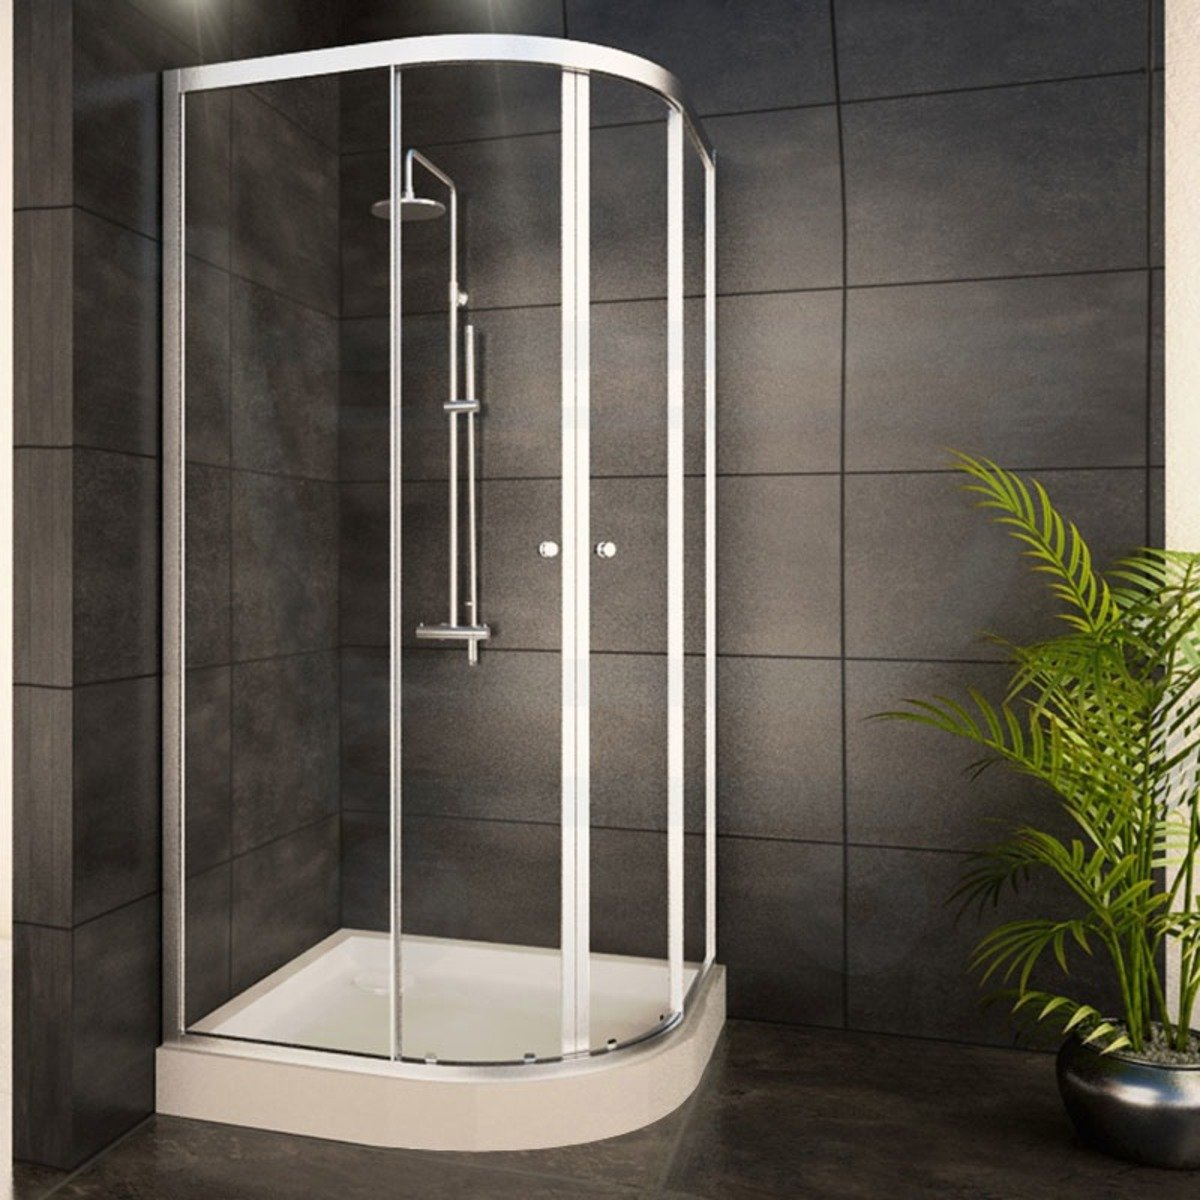 adema glass cabine de douche quart de rond avec 2 portes coulissantes 80x80x185cm verre. Black Bedroom Furniture Sets. Home Design Ideas